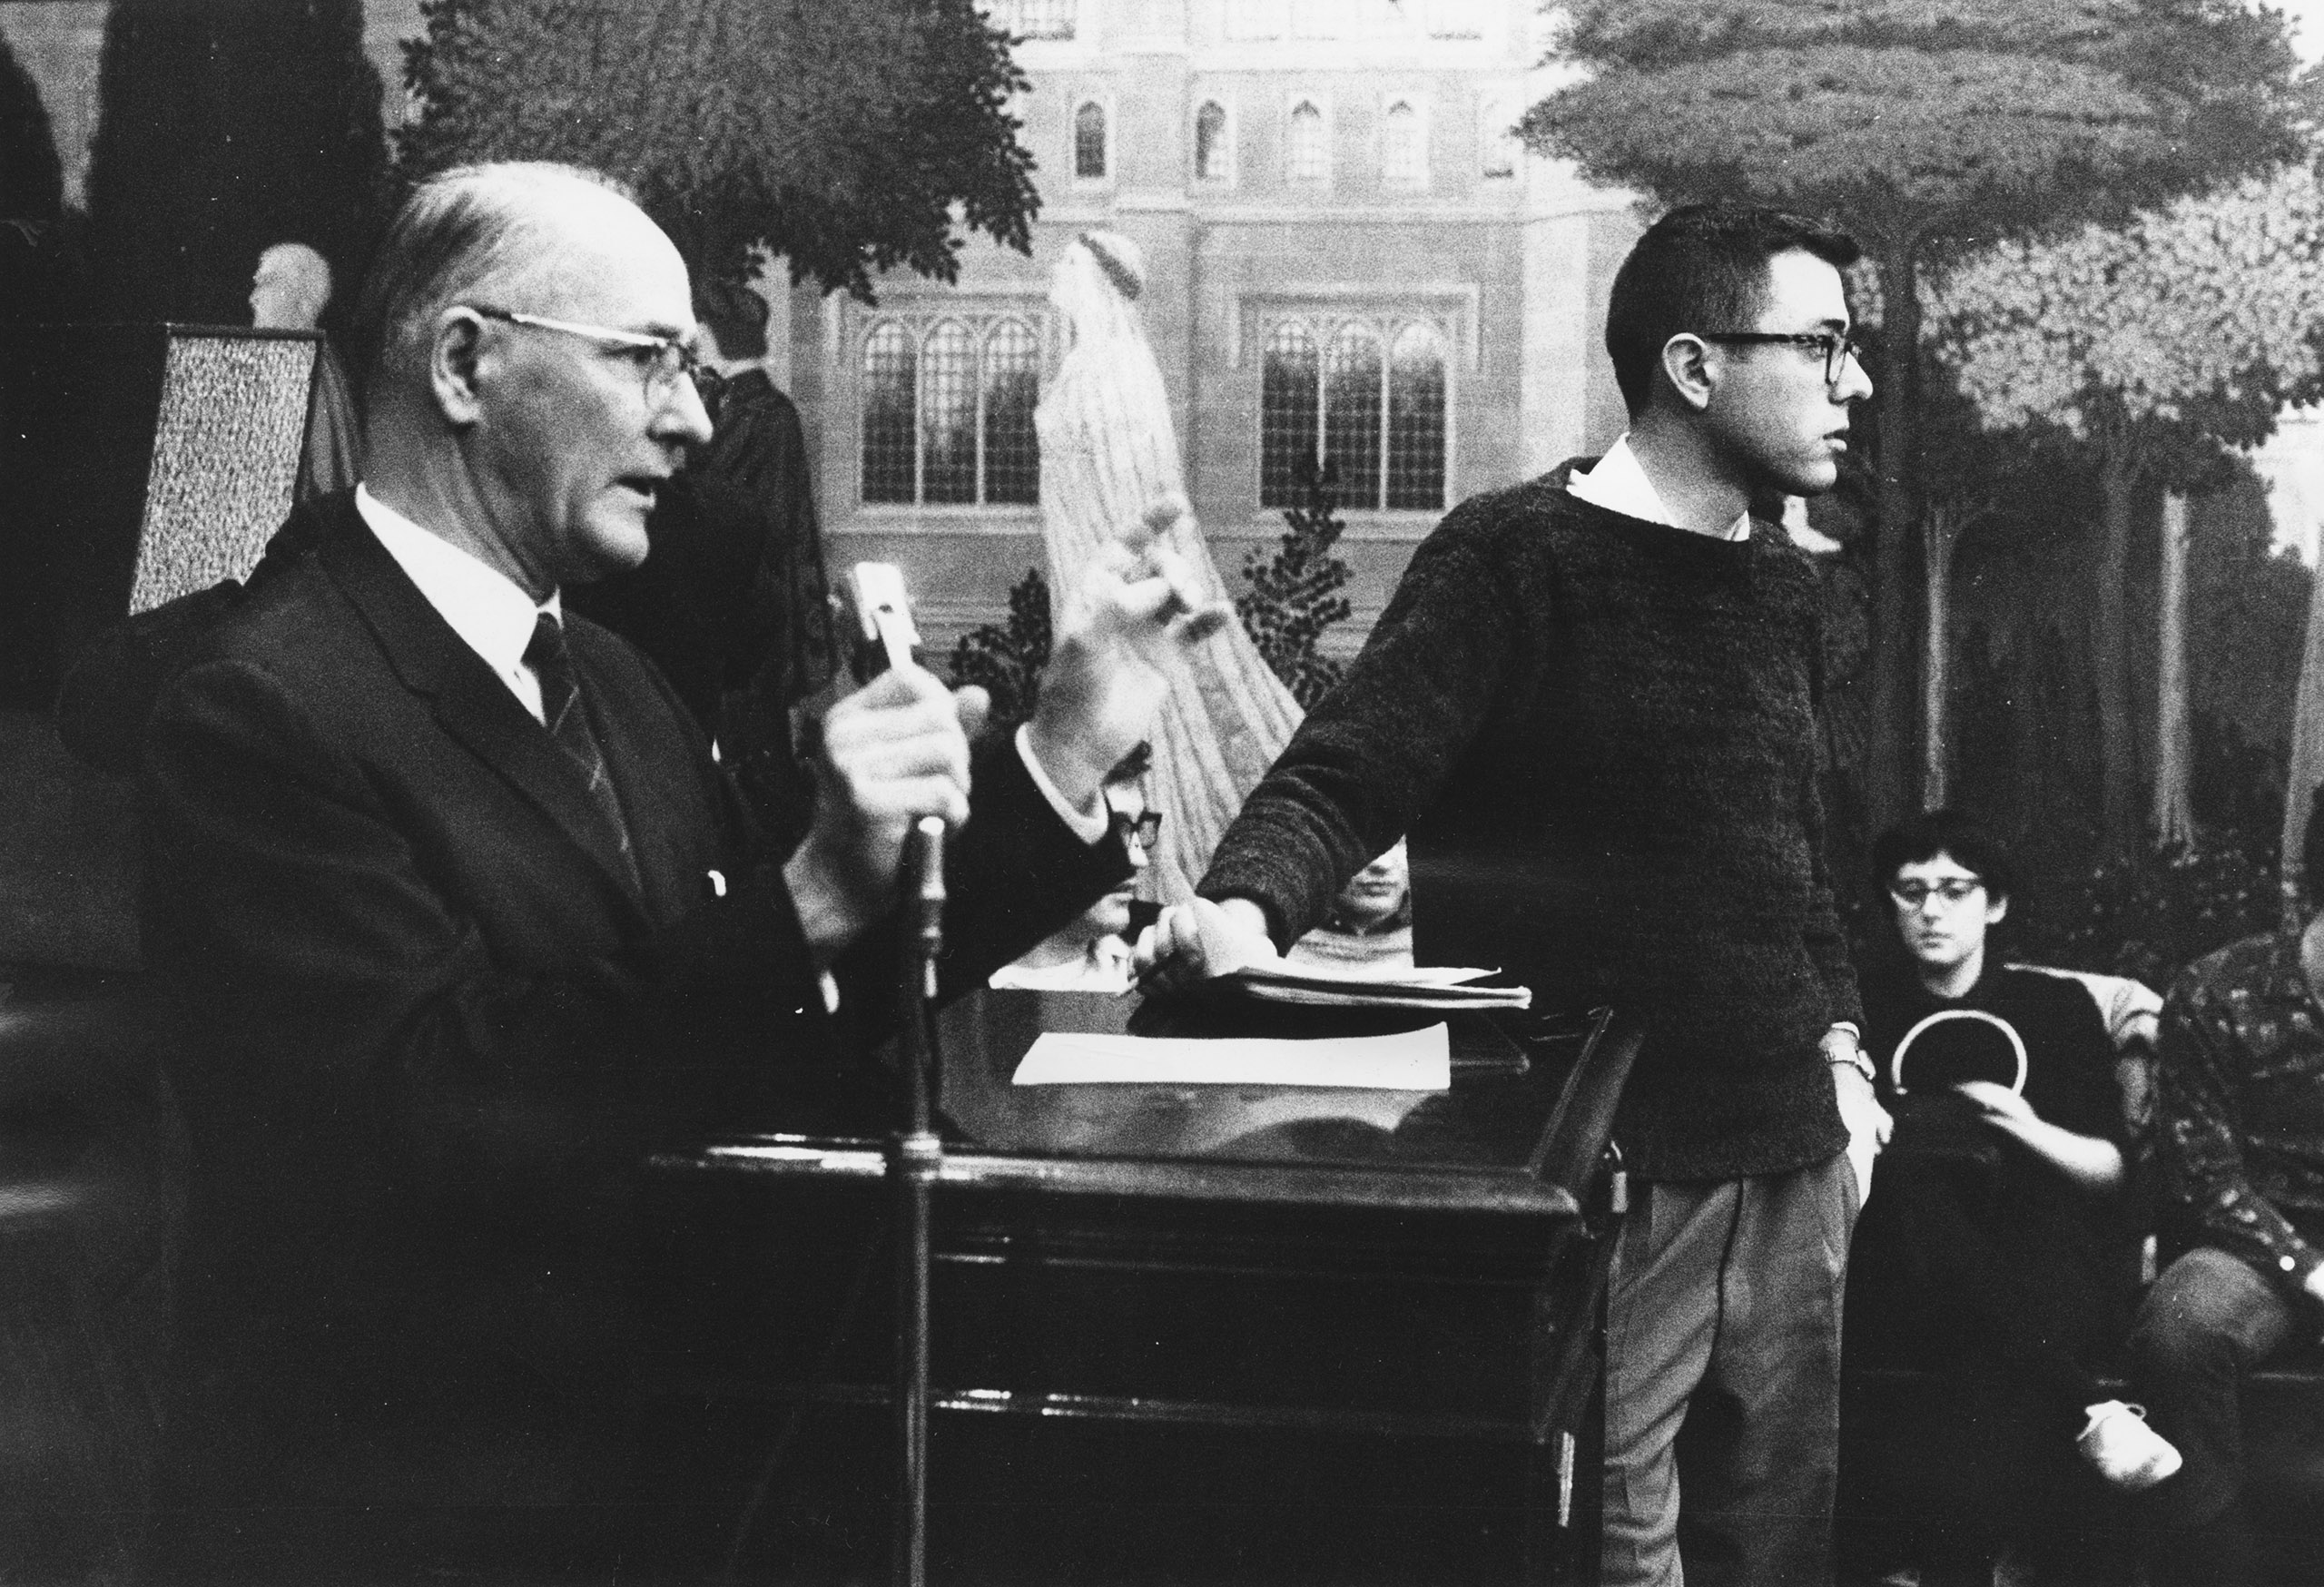 Bernie Sanders (R), member of the steering committee, stands next to George Beadle, University of Chicago president, who is speaking at a Committee On Racial Equality meeting on housing sit-ins. 1962.